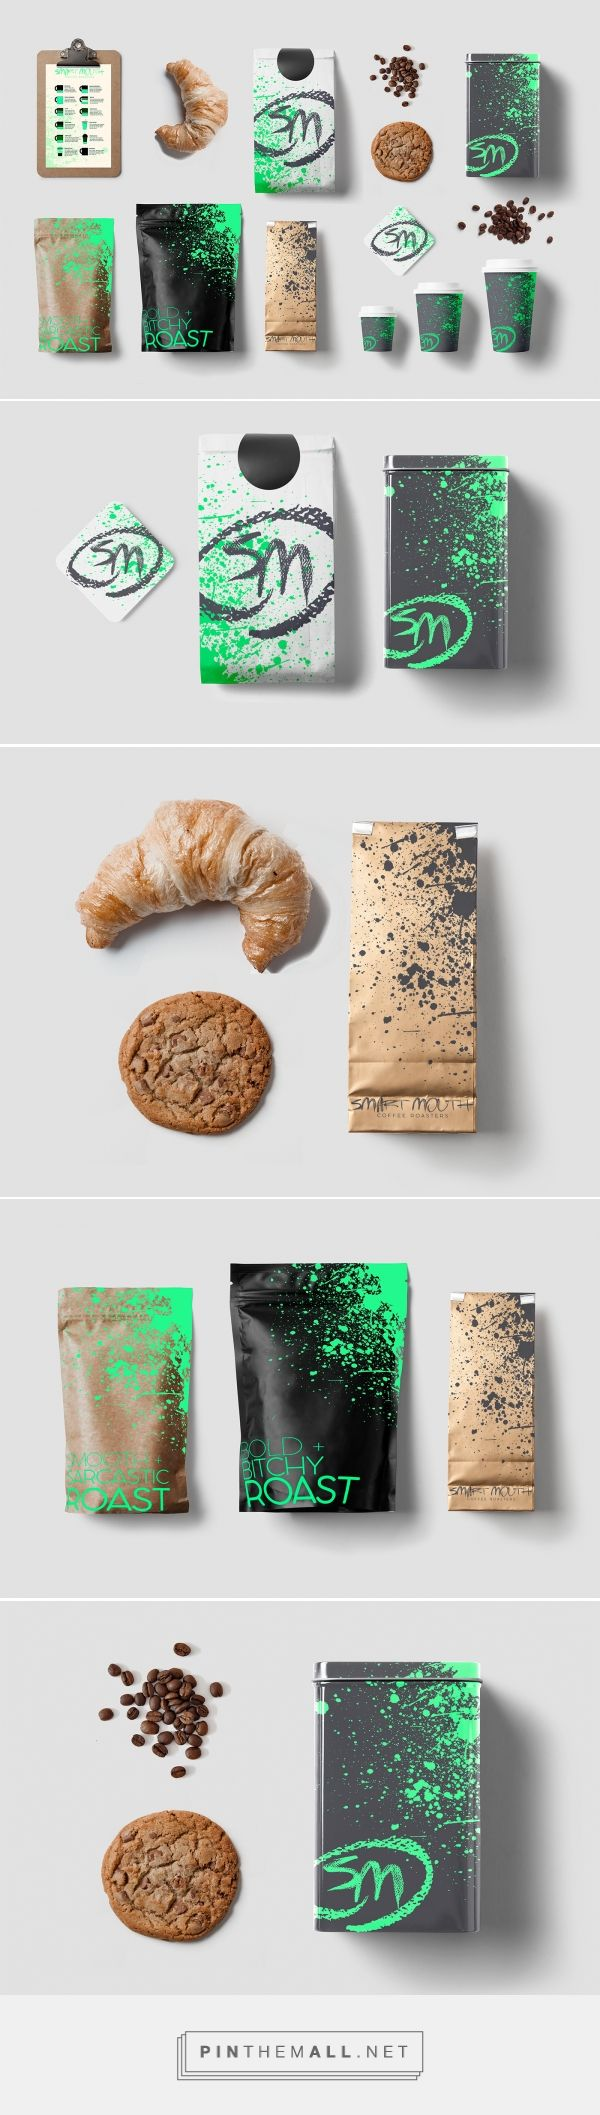 Smart Mouth Coffee Roasters Brand Identity on Behance by Yael Safirstein curated by Packaging Diva PD. Coffee packaging that talks back. Don't let the dark cups and neon paint splatter scare you. Designed for anyone who enjoys a well made cup of coffee - while this design encourages you to be your most audacious, undaunted self. Without apologies.